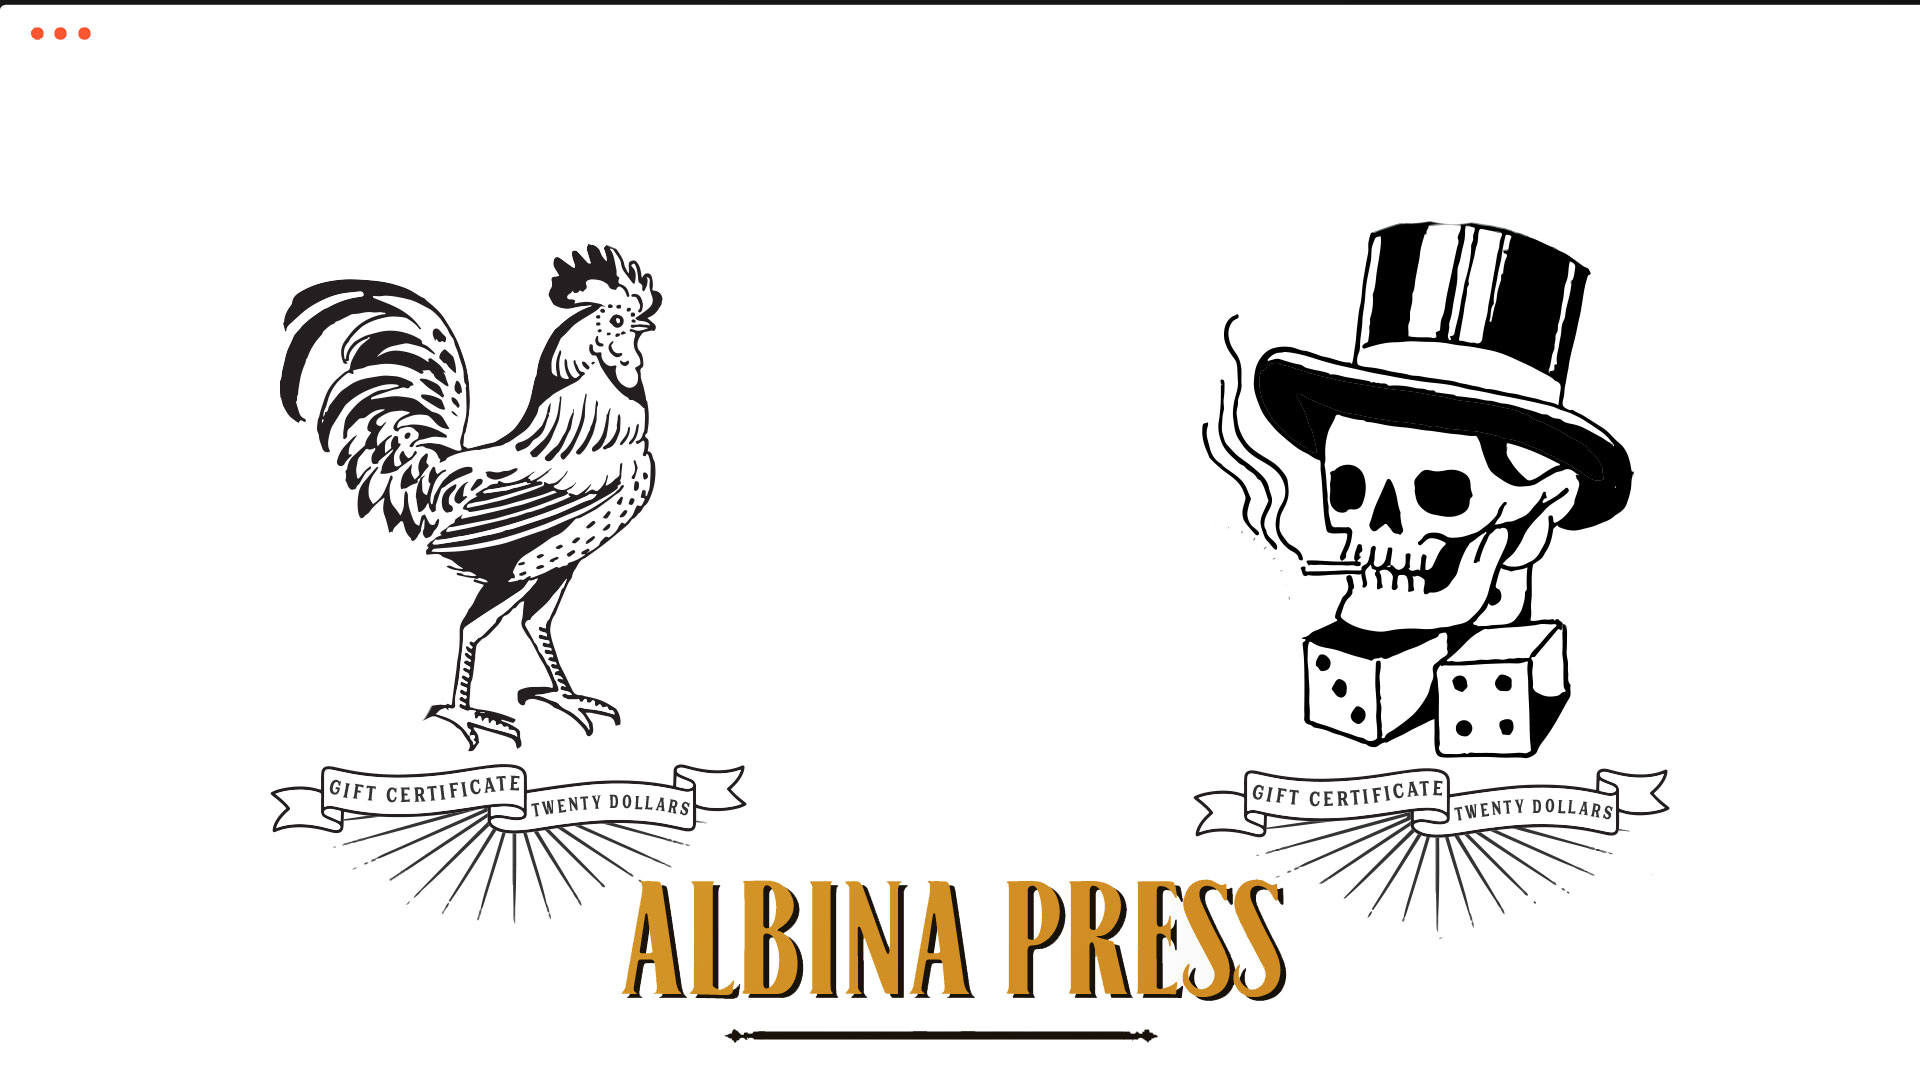 Albina Press